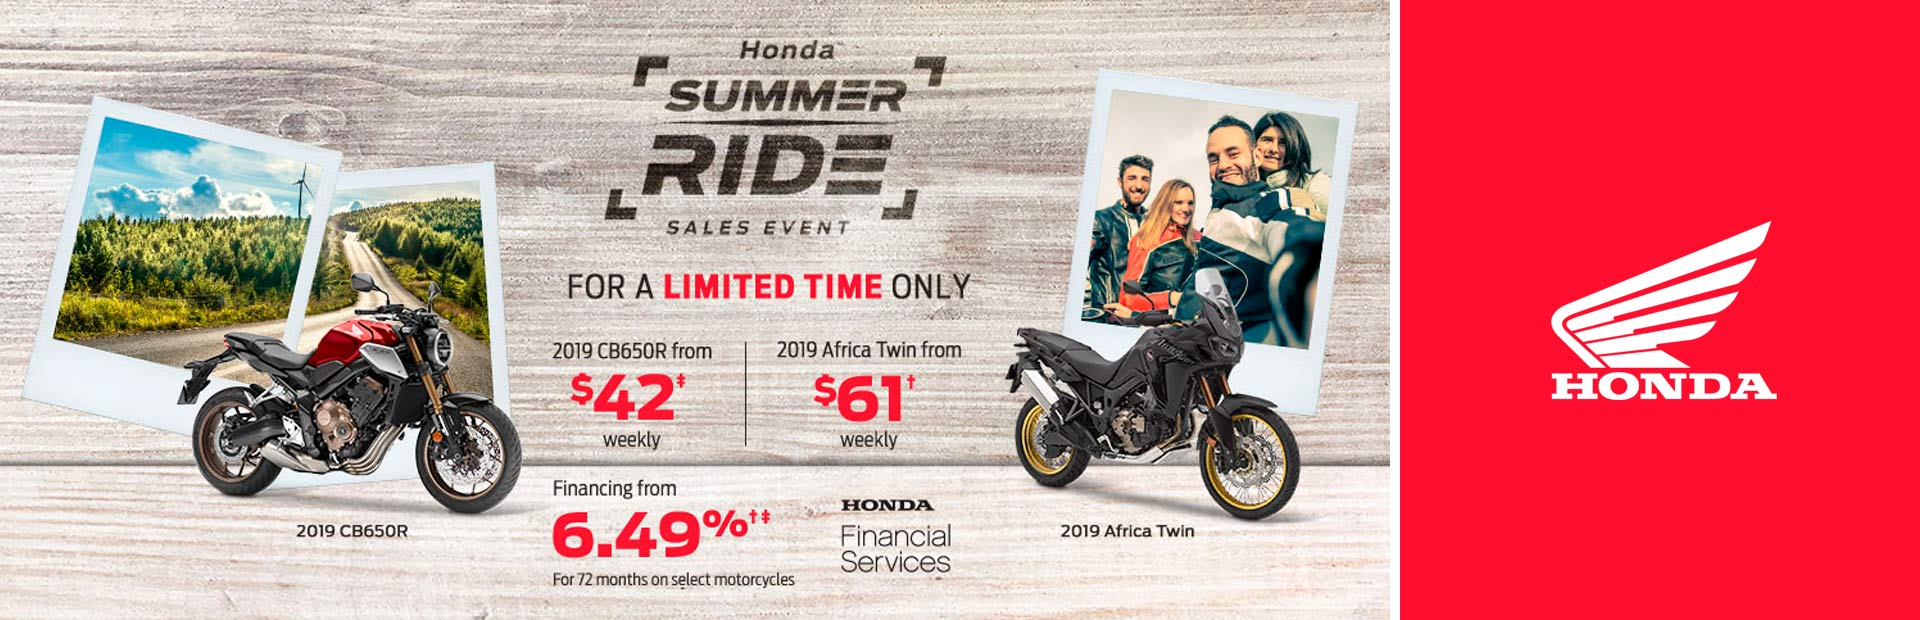 Honda: Summer Ride Sales Event - motorcycles